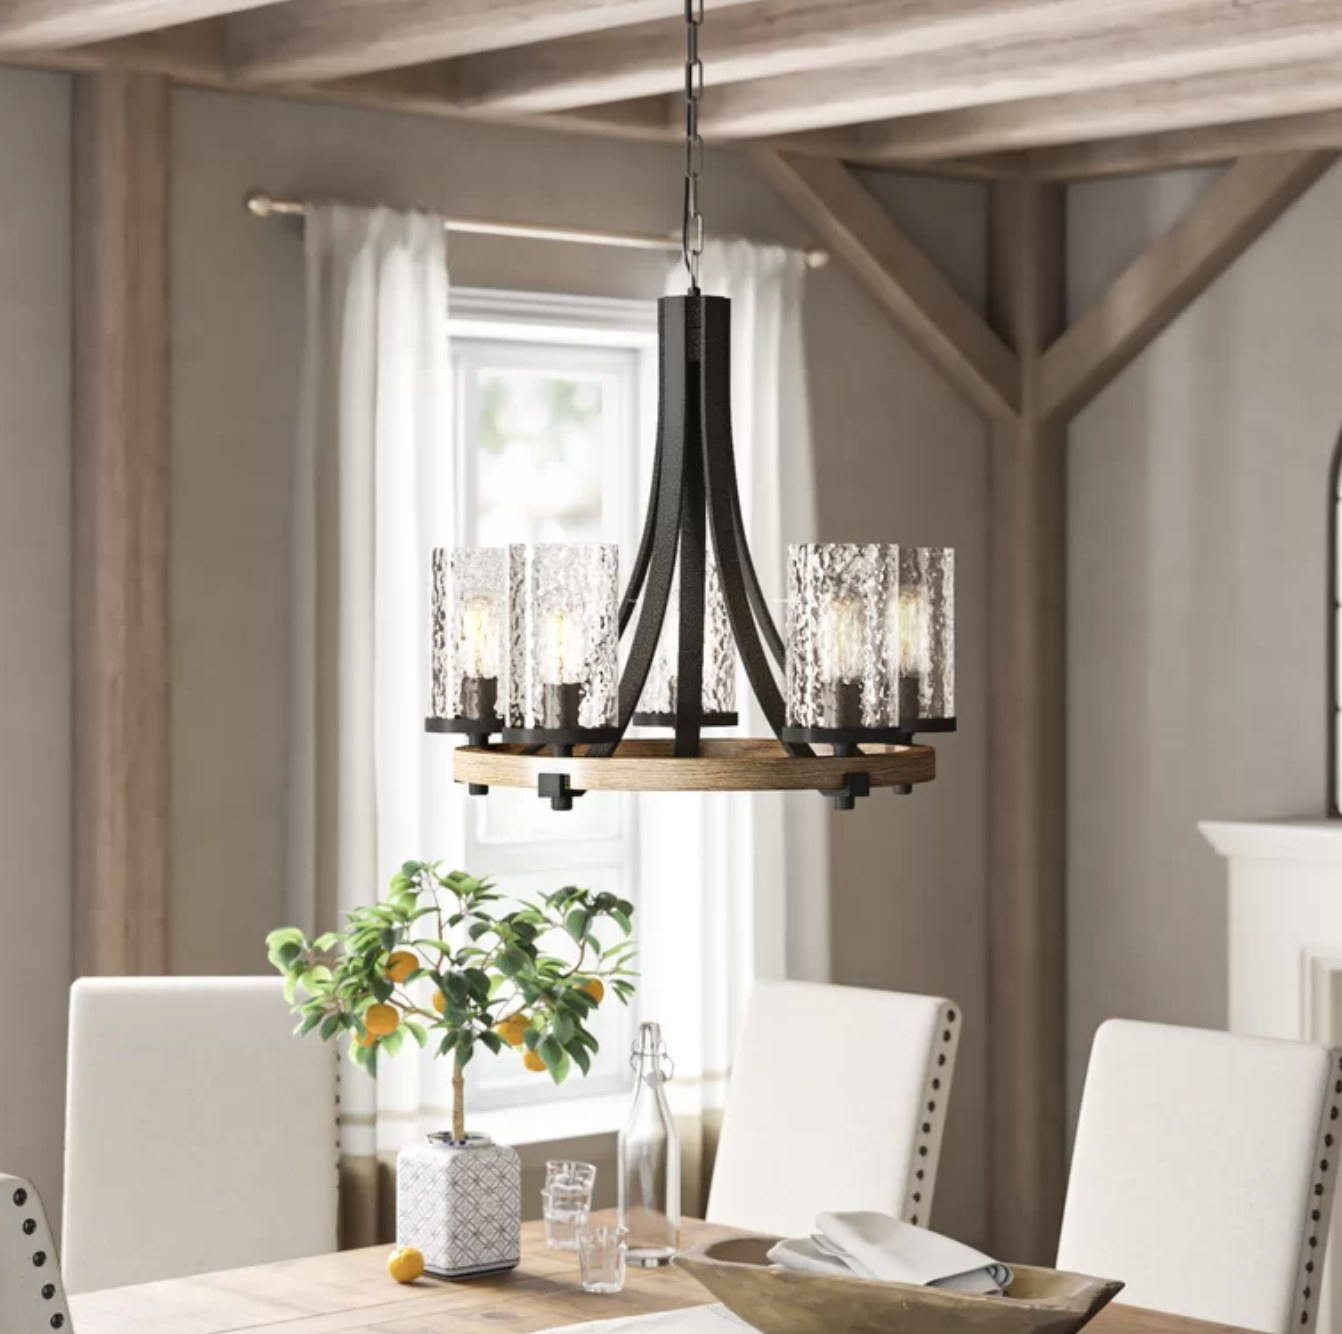 the chandelier with glass light shades and a wooden base